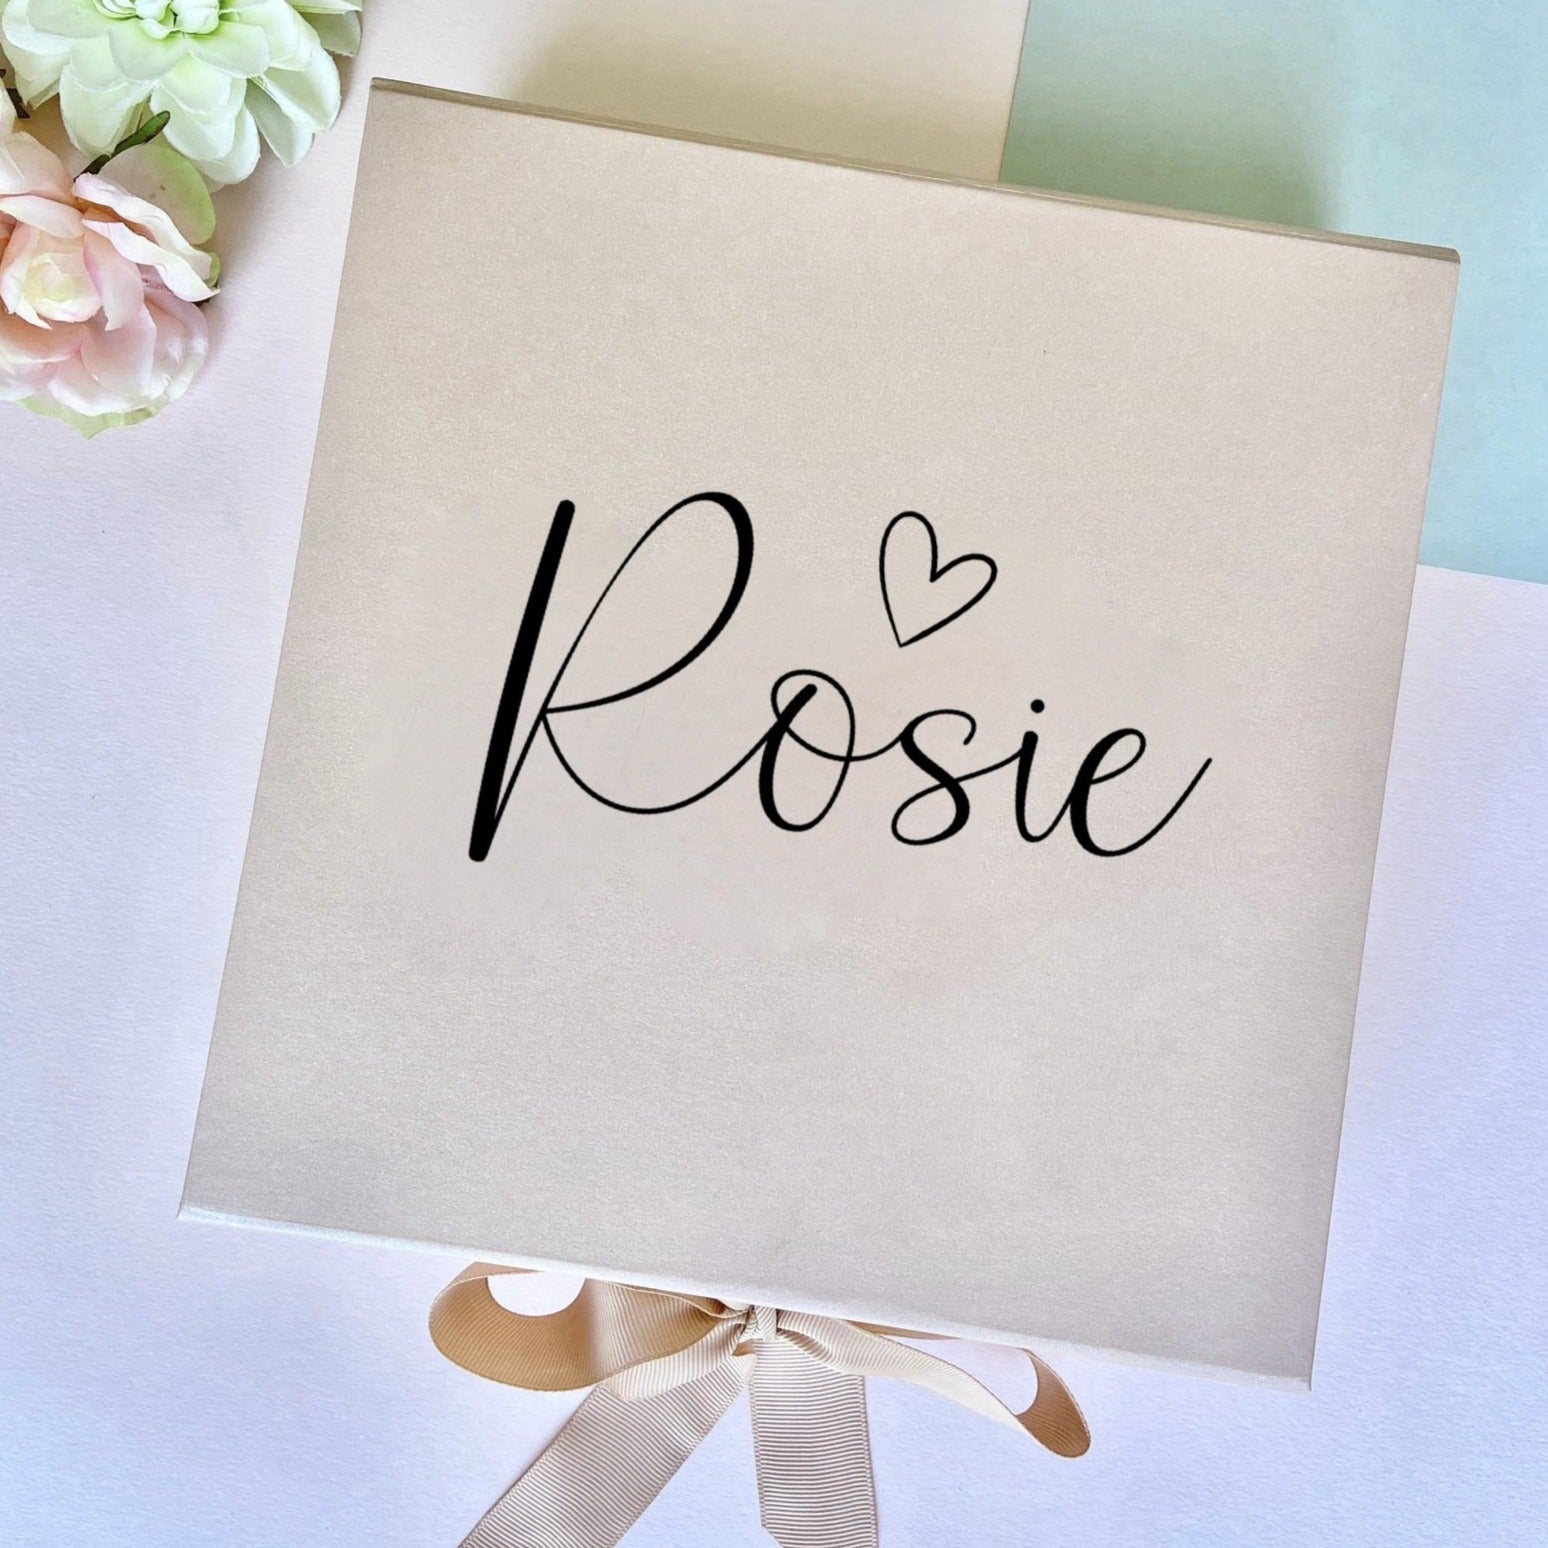 Personalised Gift Box with Heart